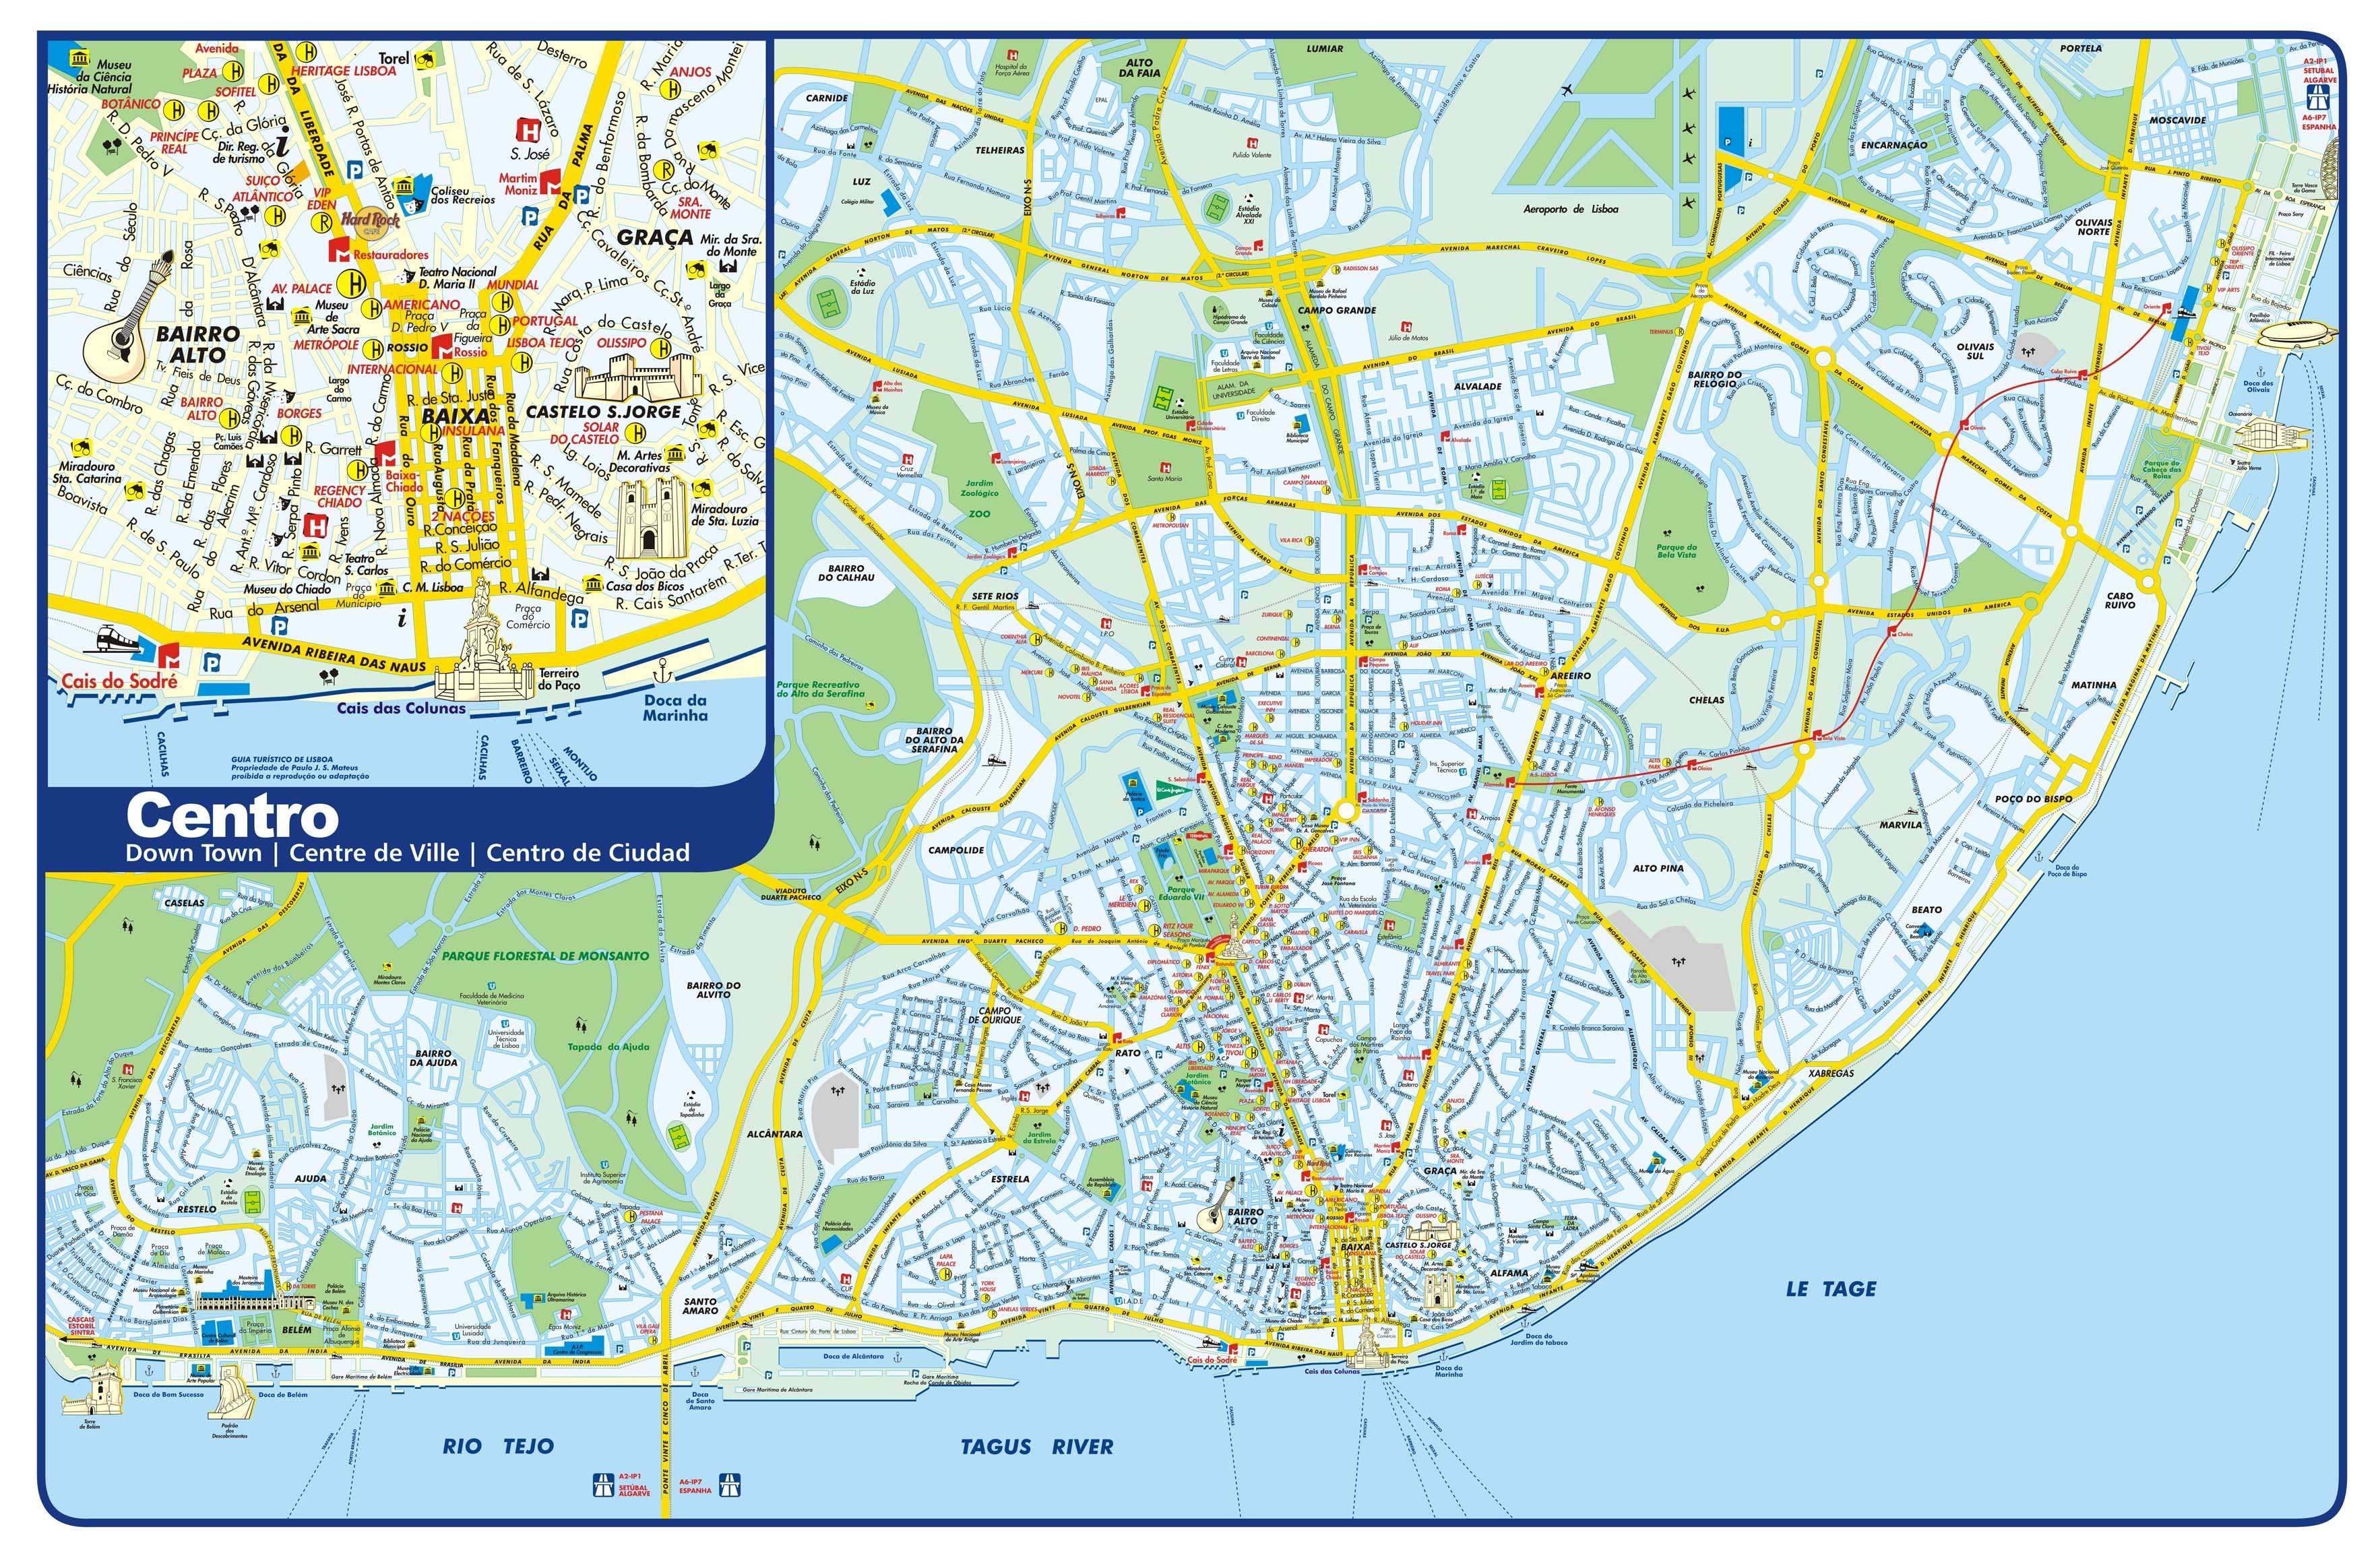 Large Lisbon Maps For Free Download And Print | High-Resolution And - Lisbon Tourist Map Printable